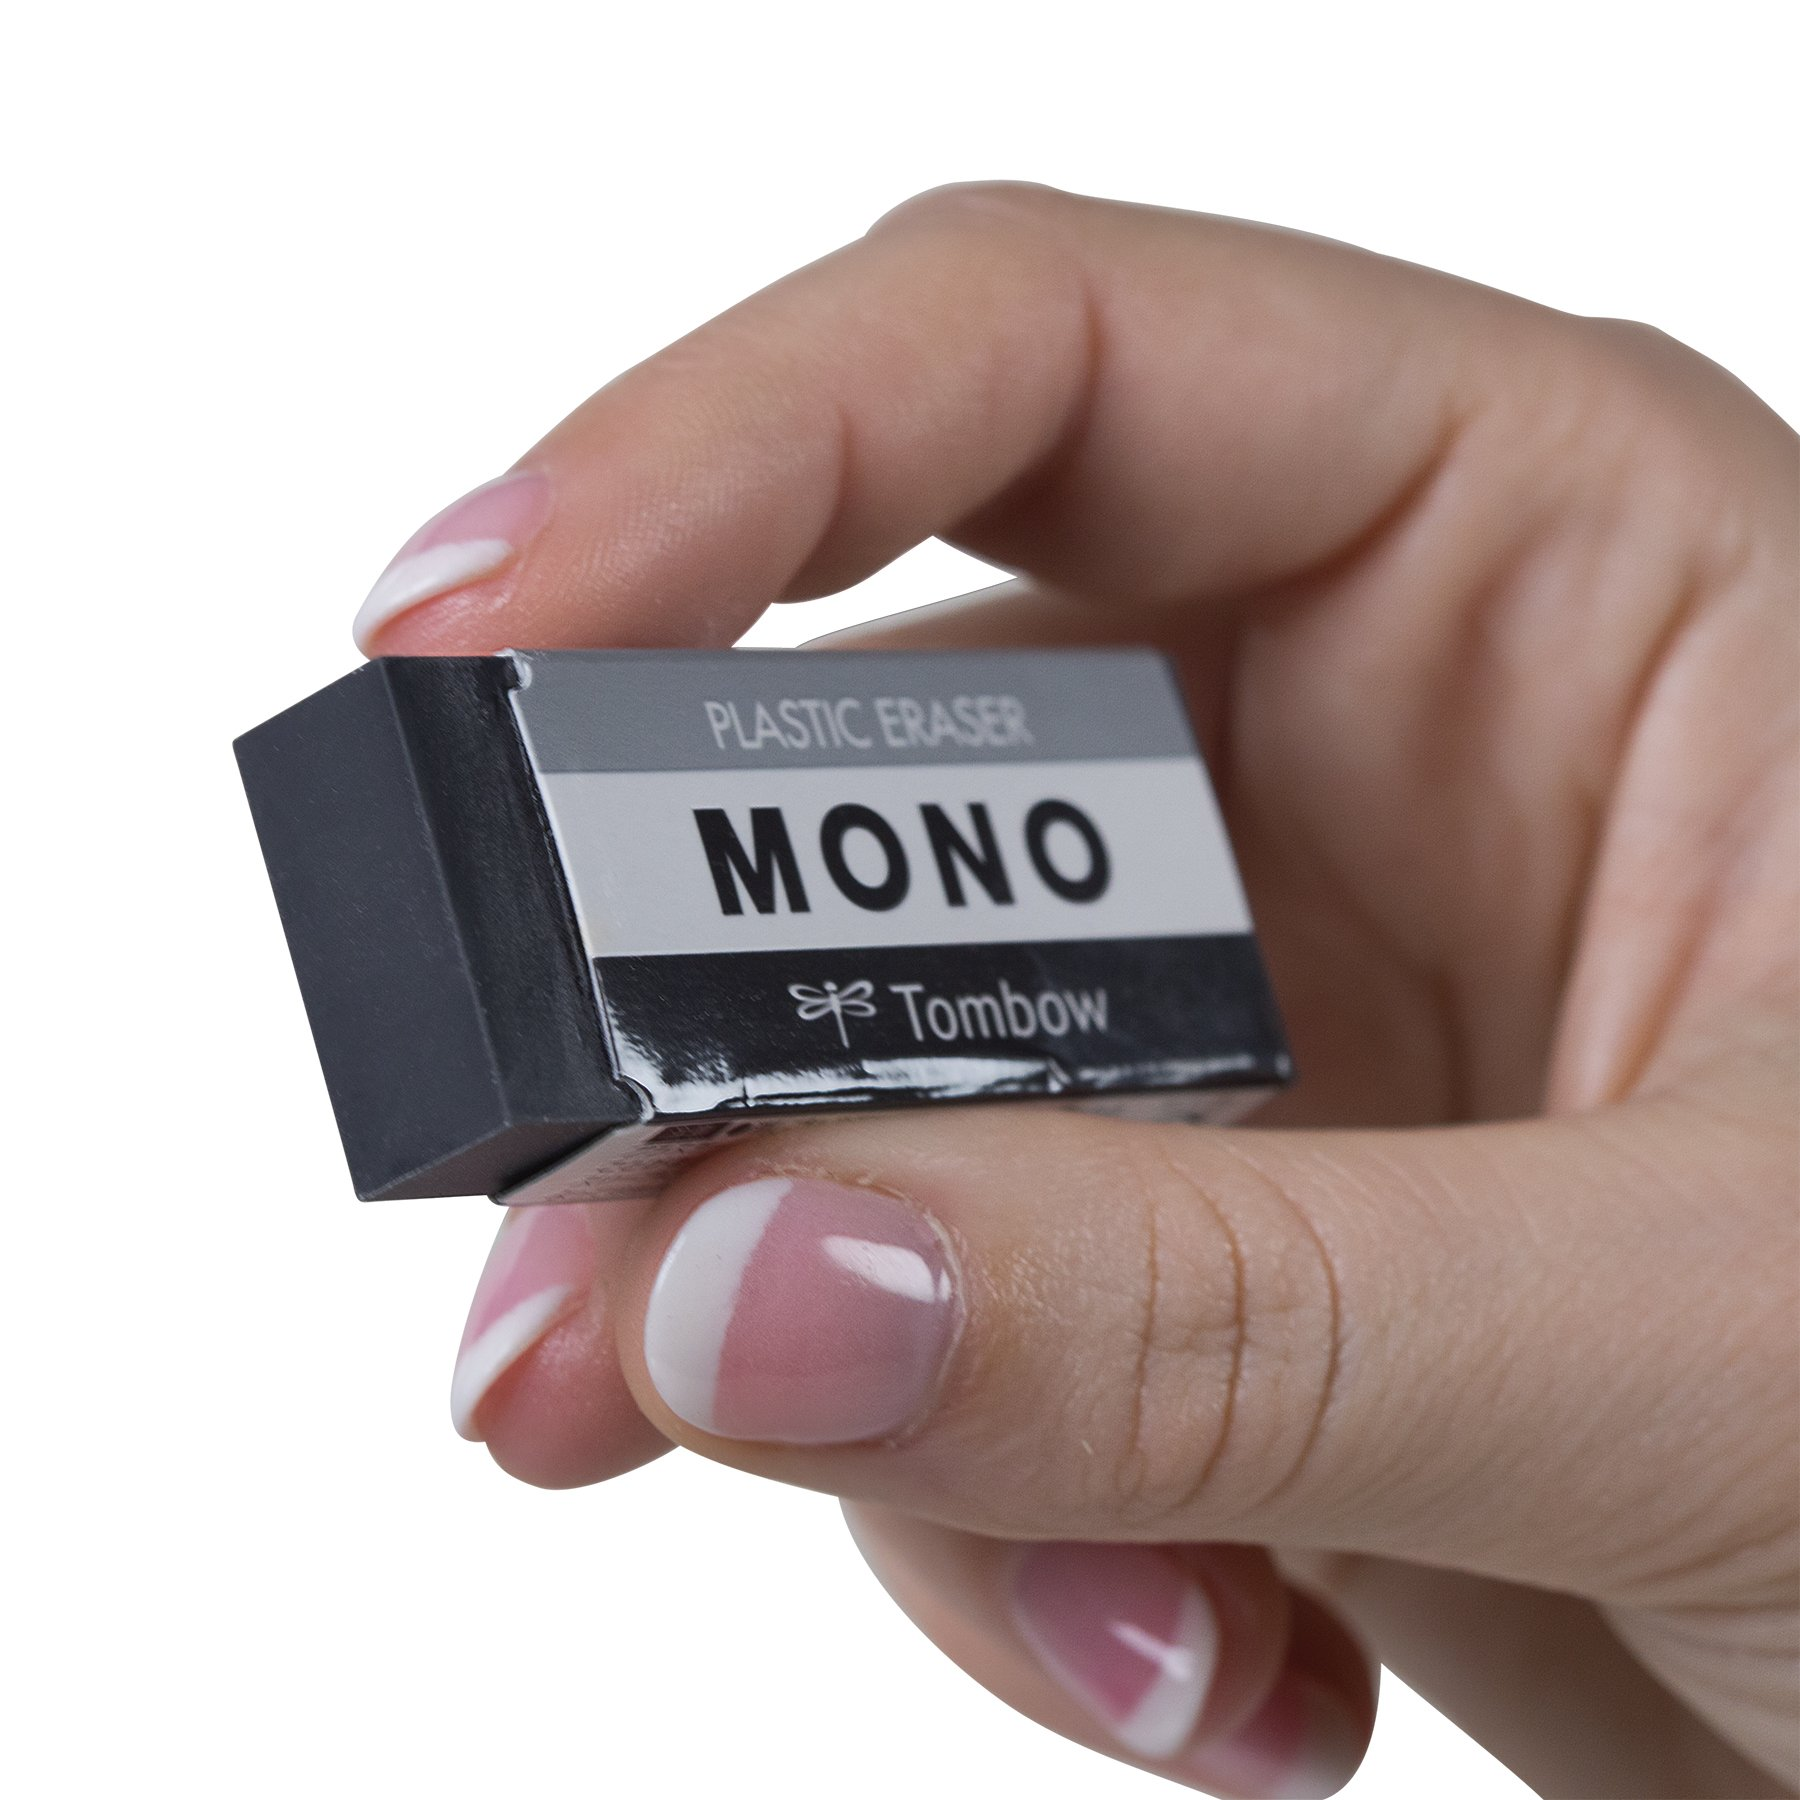 TOMBOW Mono Eraser, Black, Small, 40 PC Box, Pack, Piece by Tombow (Image #7)